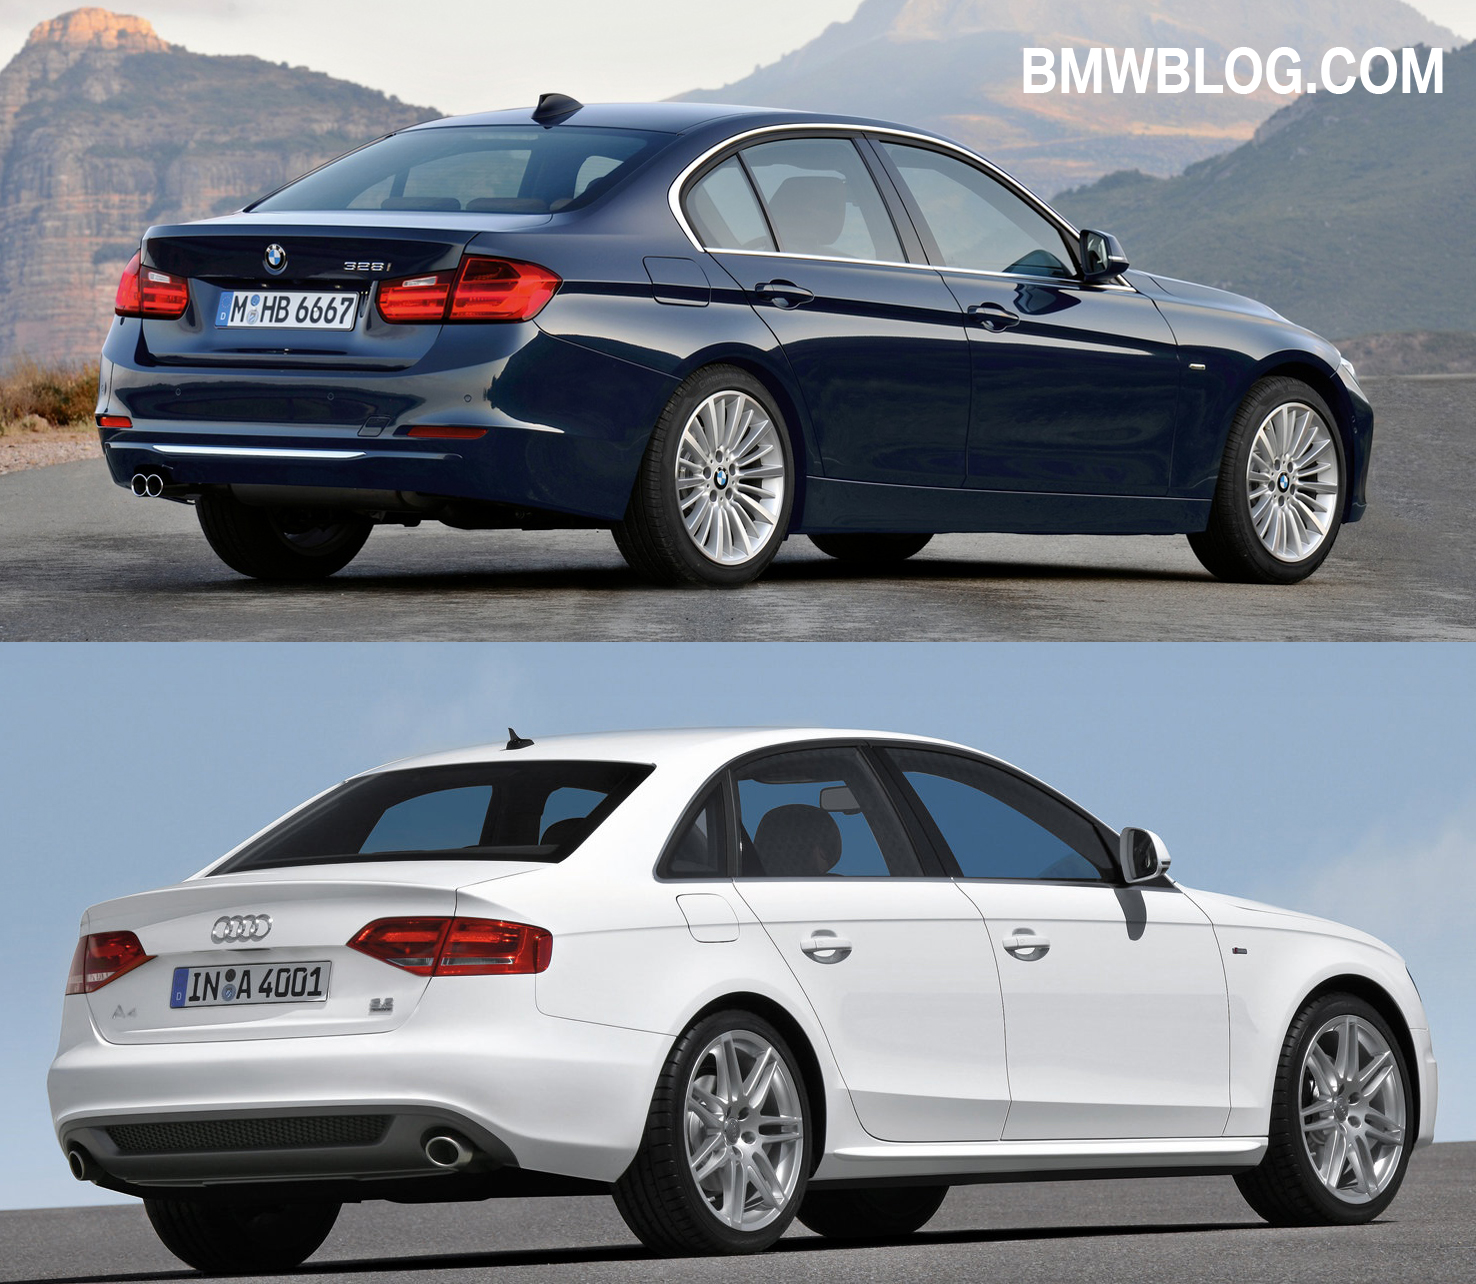 Photo Comparison G20 Bmw 3 Series Vs Facelifted Audi A4: Photo Comparison: Audi A4 Vs. 2012 BMW 3 Series